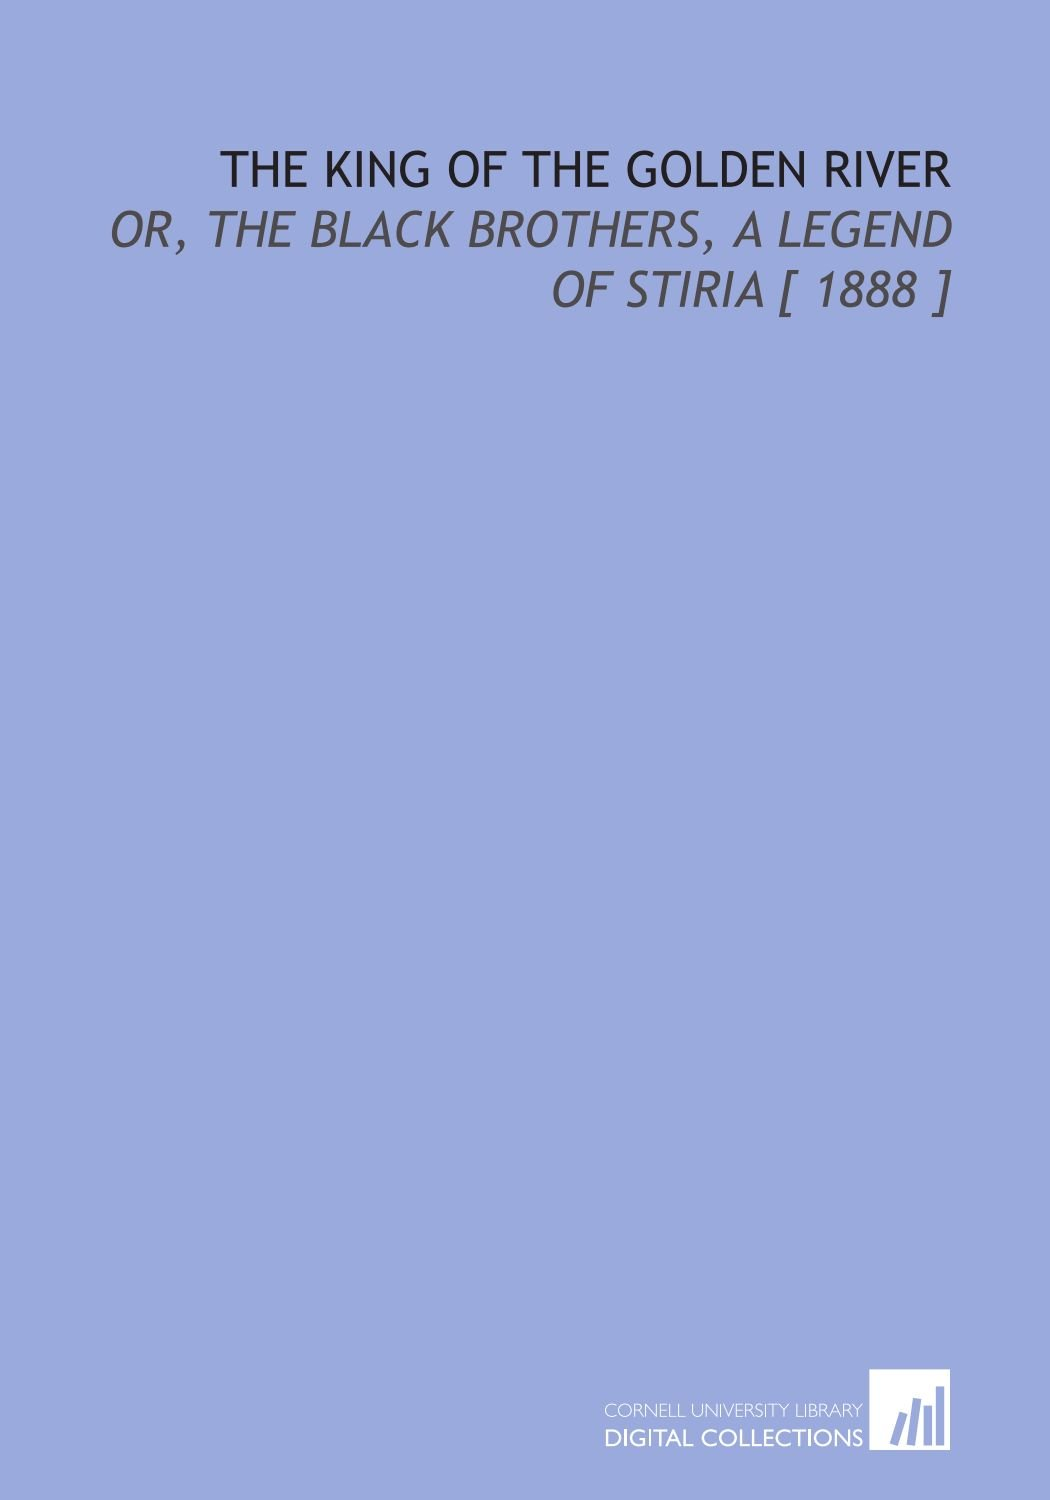 Download The King of the Golden River: Or, the Black Brothers, a Legend of Stiria [ 1888 ] ebook